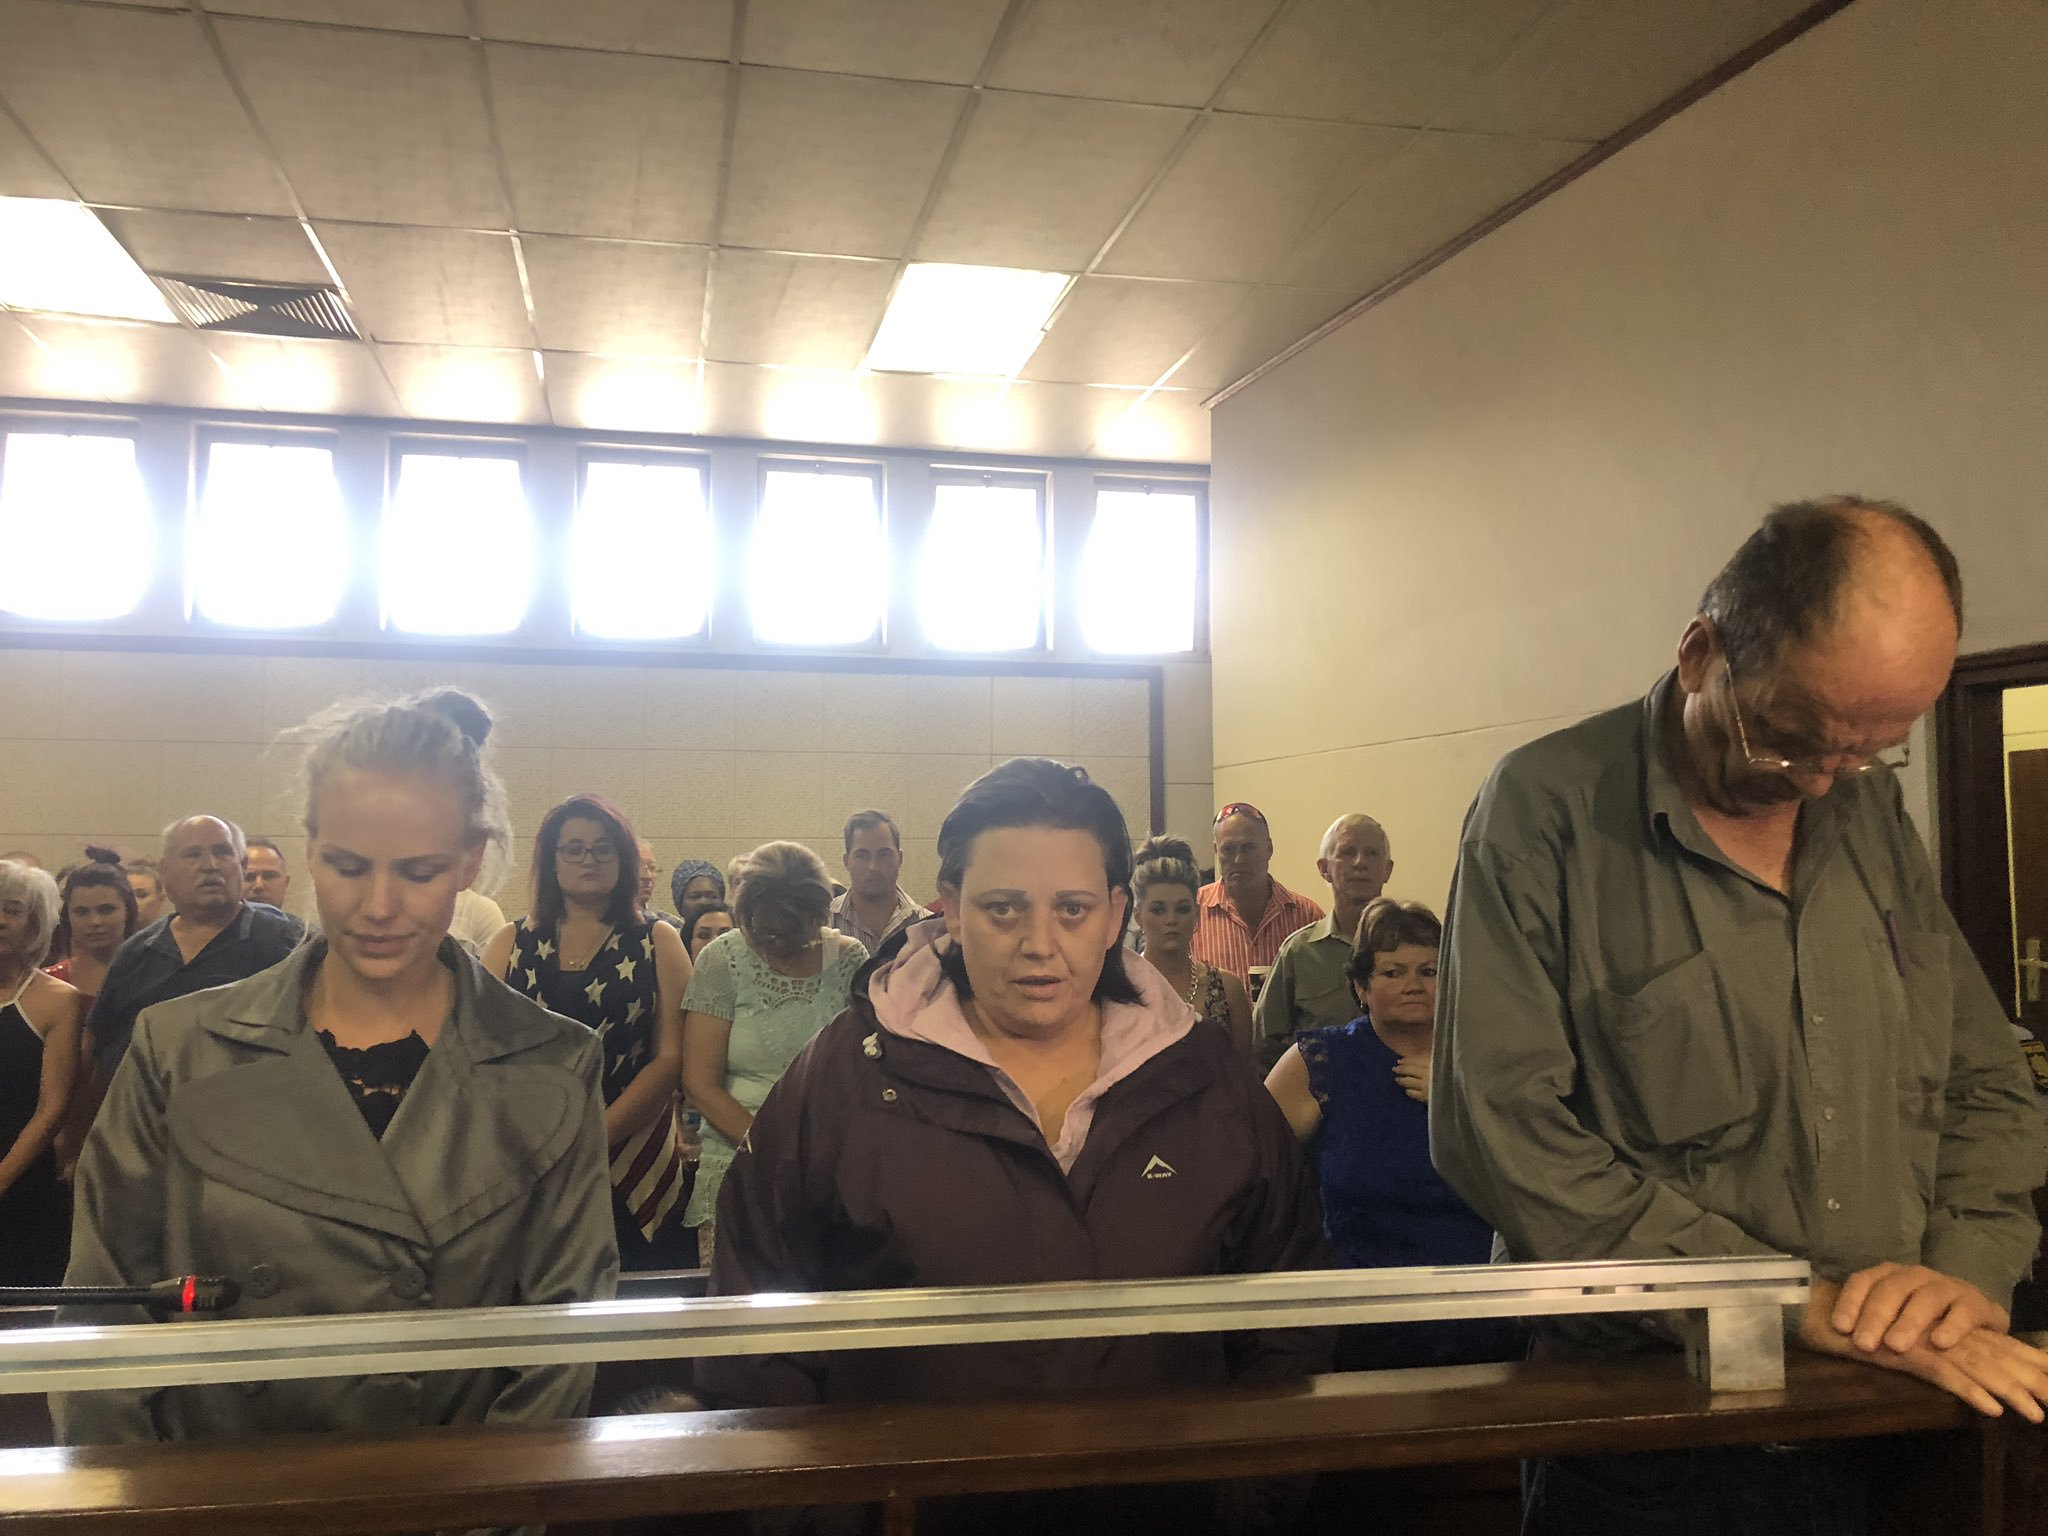 Amy Leigh de Jager kidnapping suspects in court for bail application